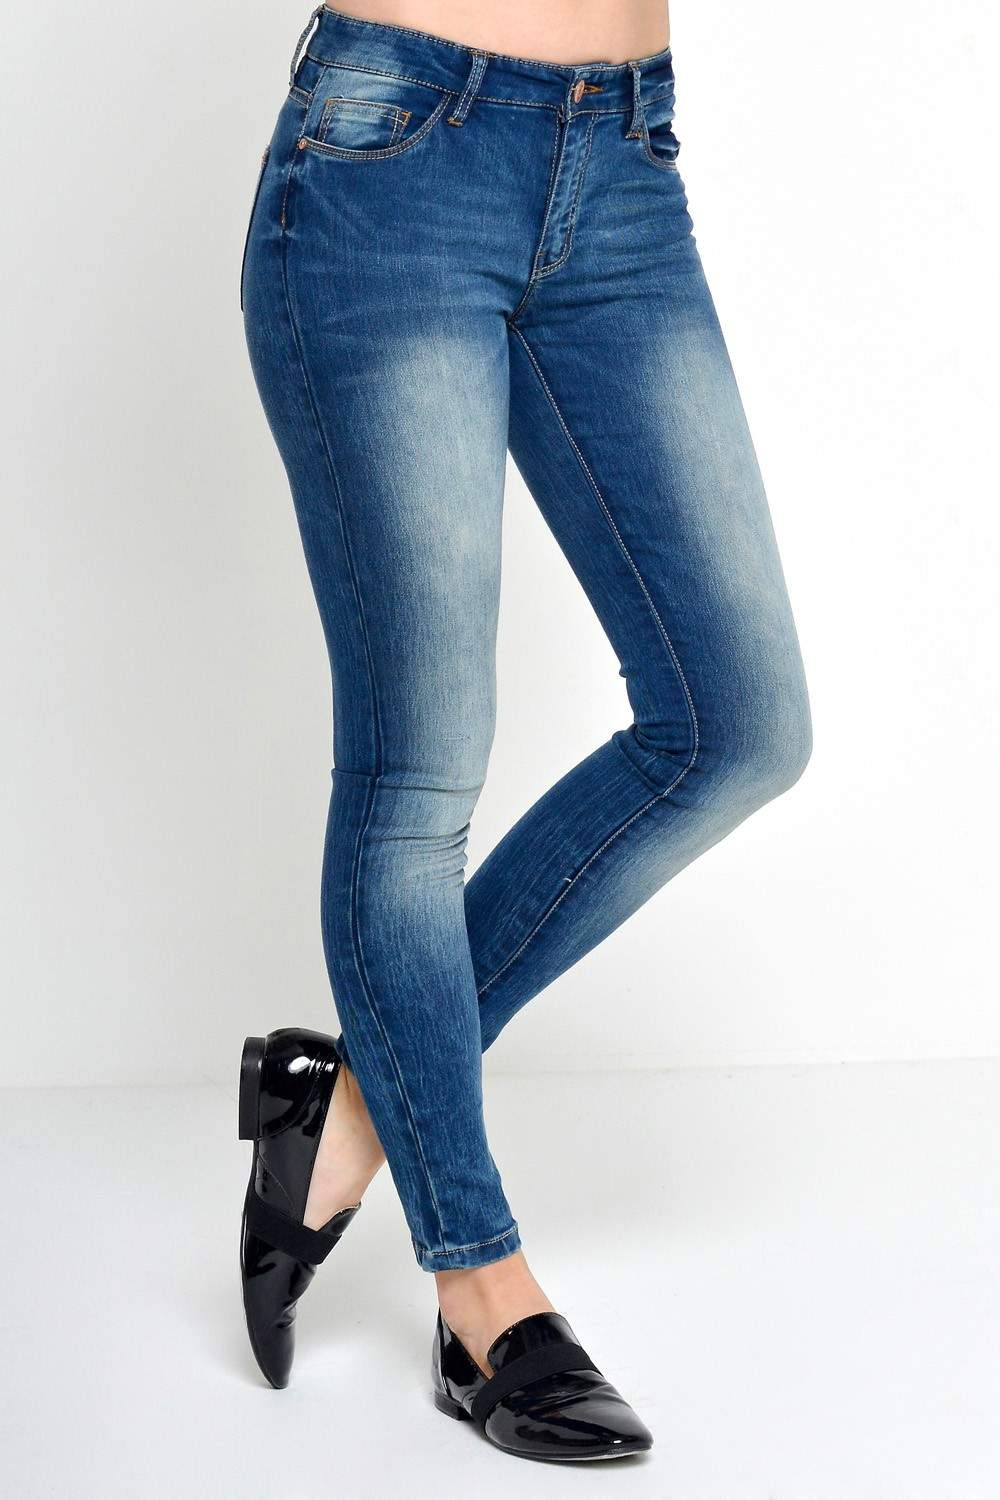 Watch Skinny Jeans porn videos for free, here on warmongeri.ga Discover the growing collection of high quality Most Relevant XXX movies and clips. No other sex tube is more popular and features more Skinny Jeans scenes than Pornhub! Browse through our impressive selection of porn videos in HD quality on any device you own.